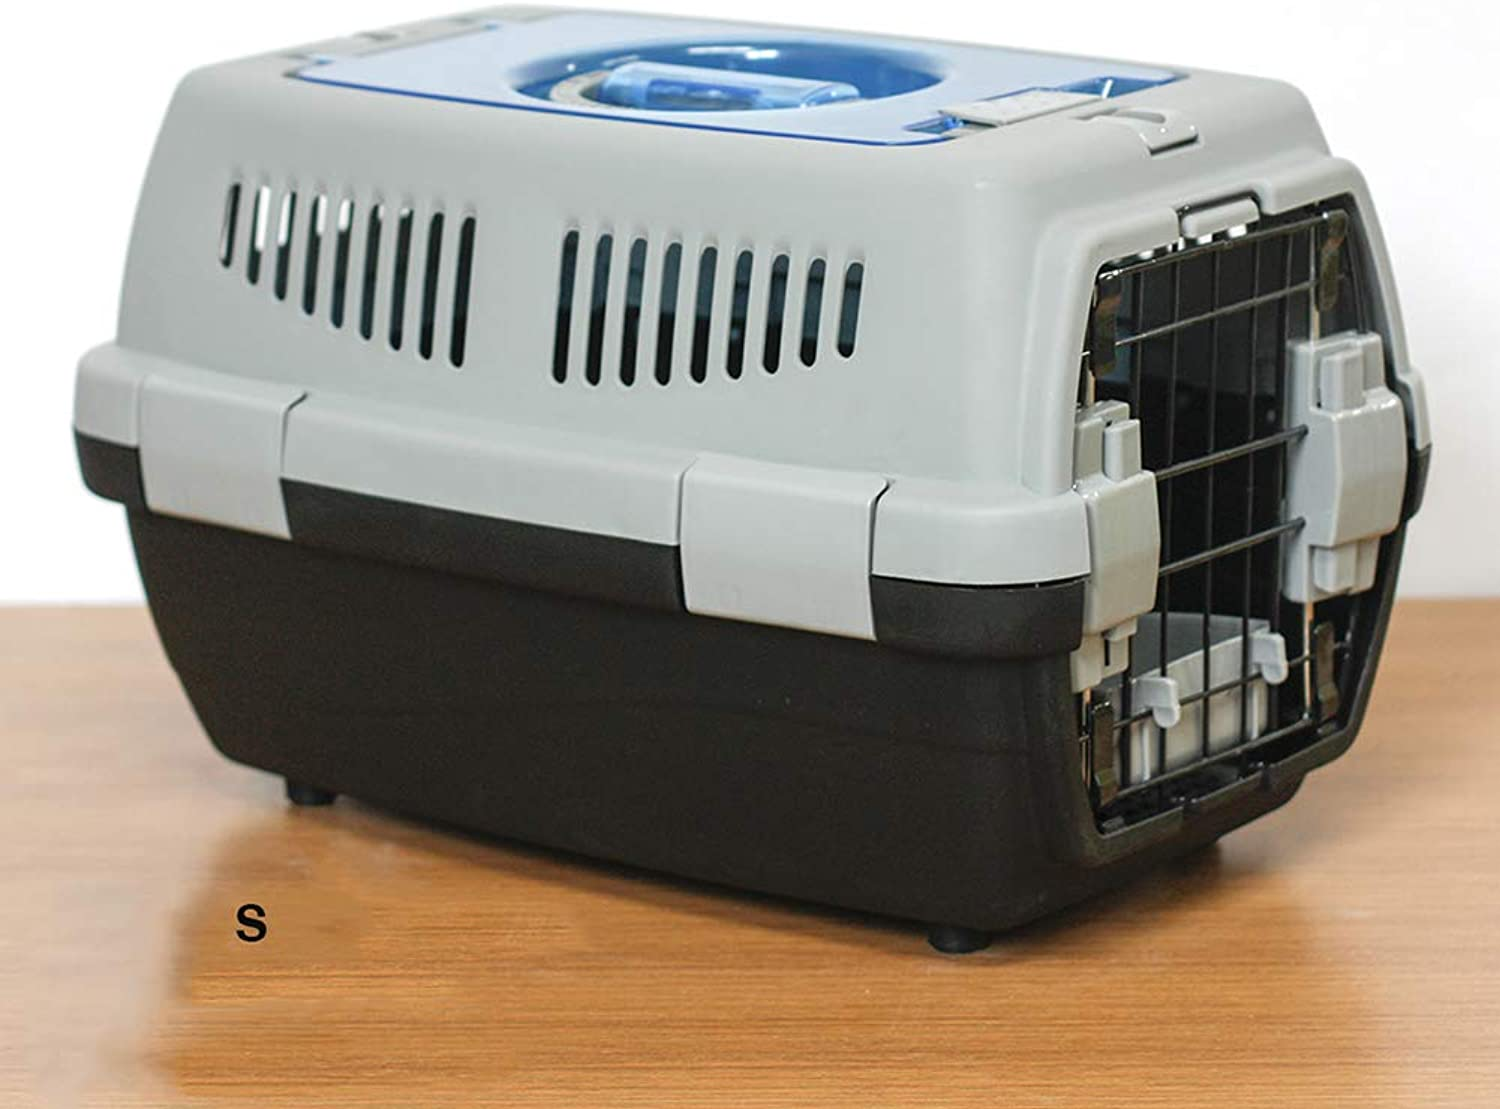 Pet Transport Box  for Transportation of Live Animals,Breathable,Portable,Travel Carrier for Dog Cat Puppy, 2 colors Optional